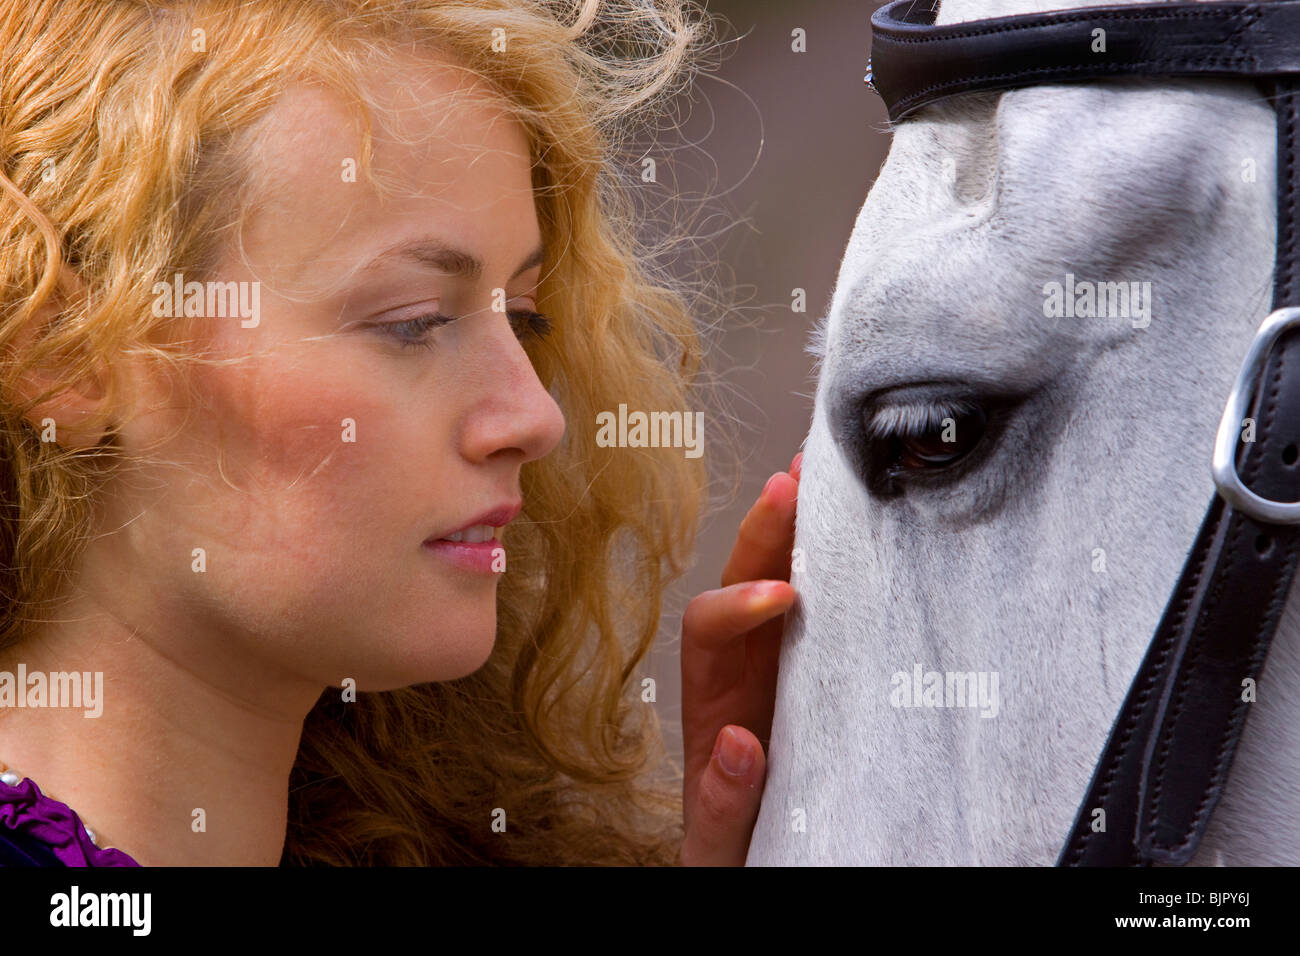 Girl with horse 5 - Stock Image